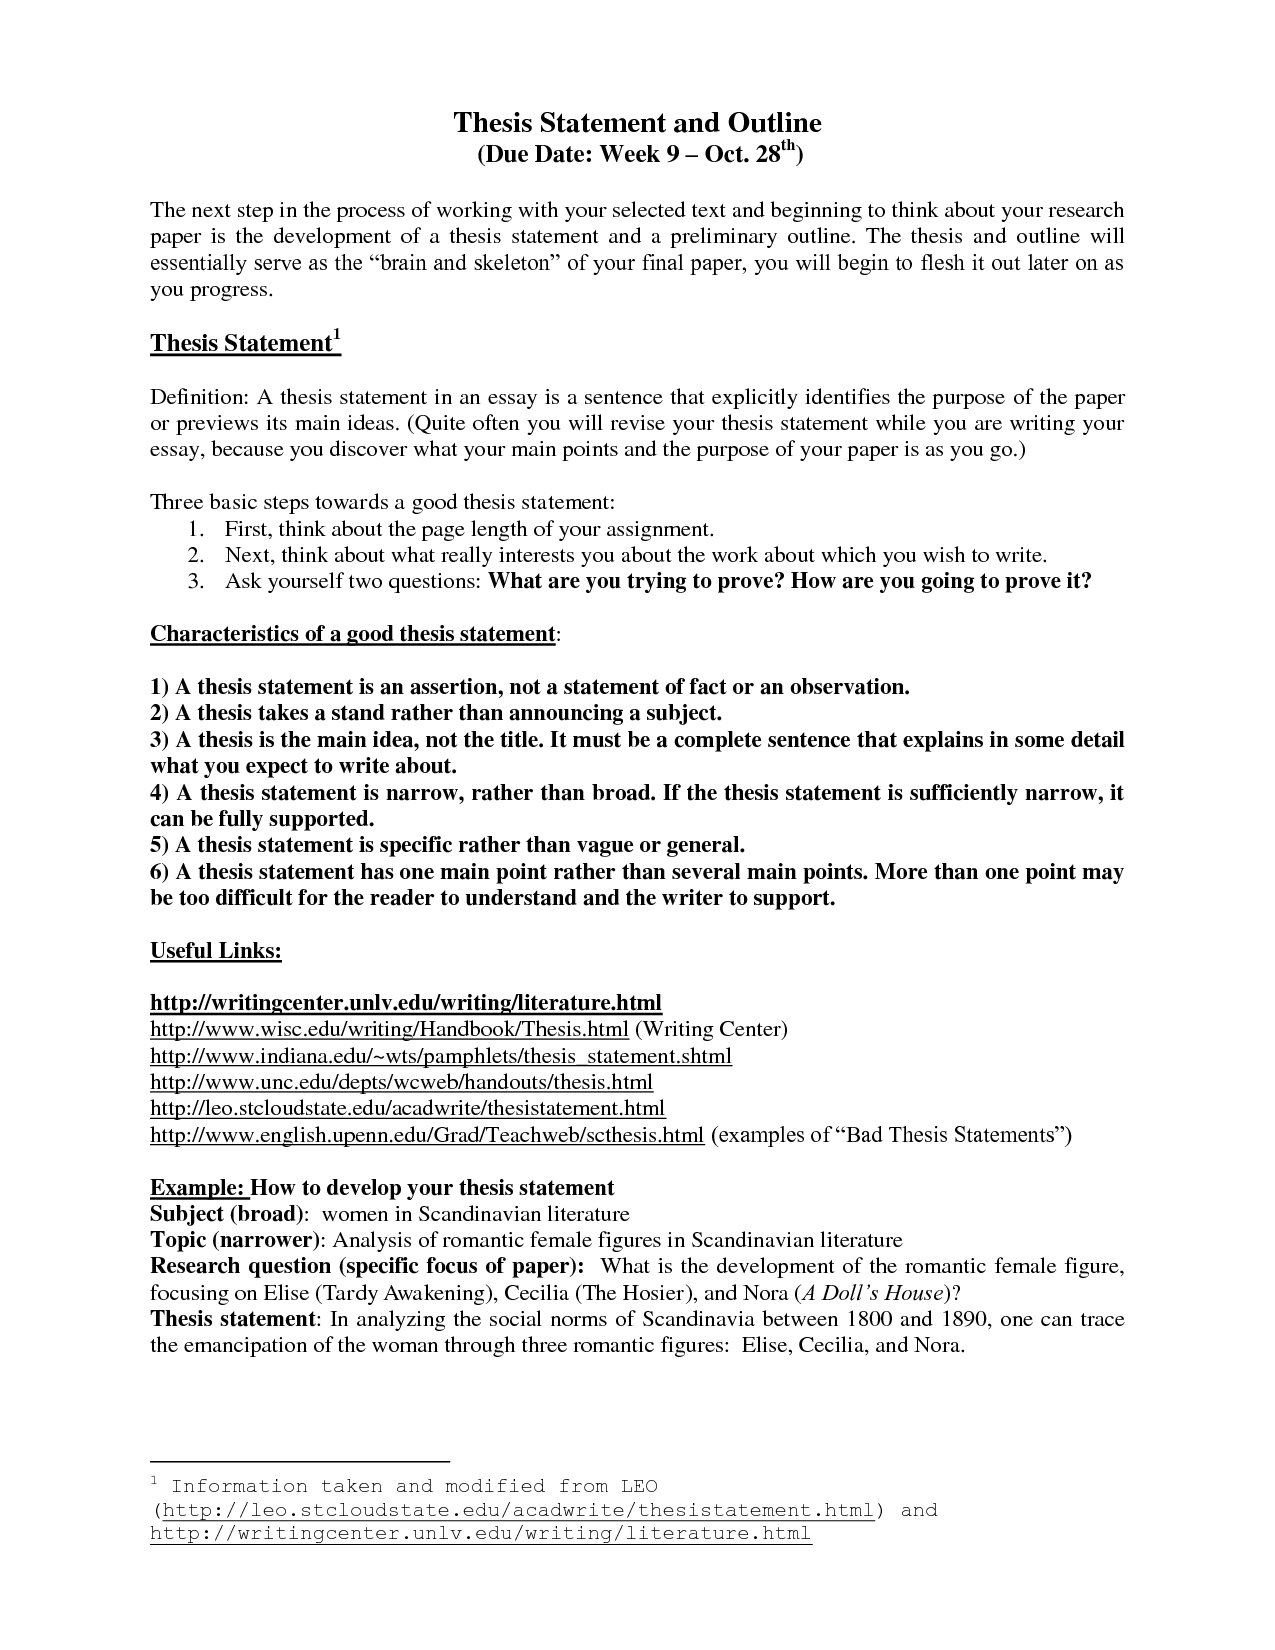 007 Thesis Statement And Outline Template Wx8nmdez Research Paper Fascinating Autism Full